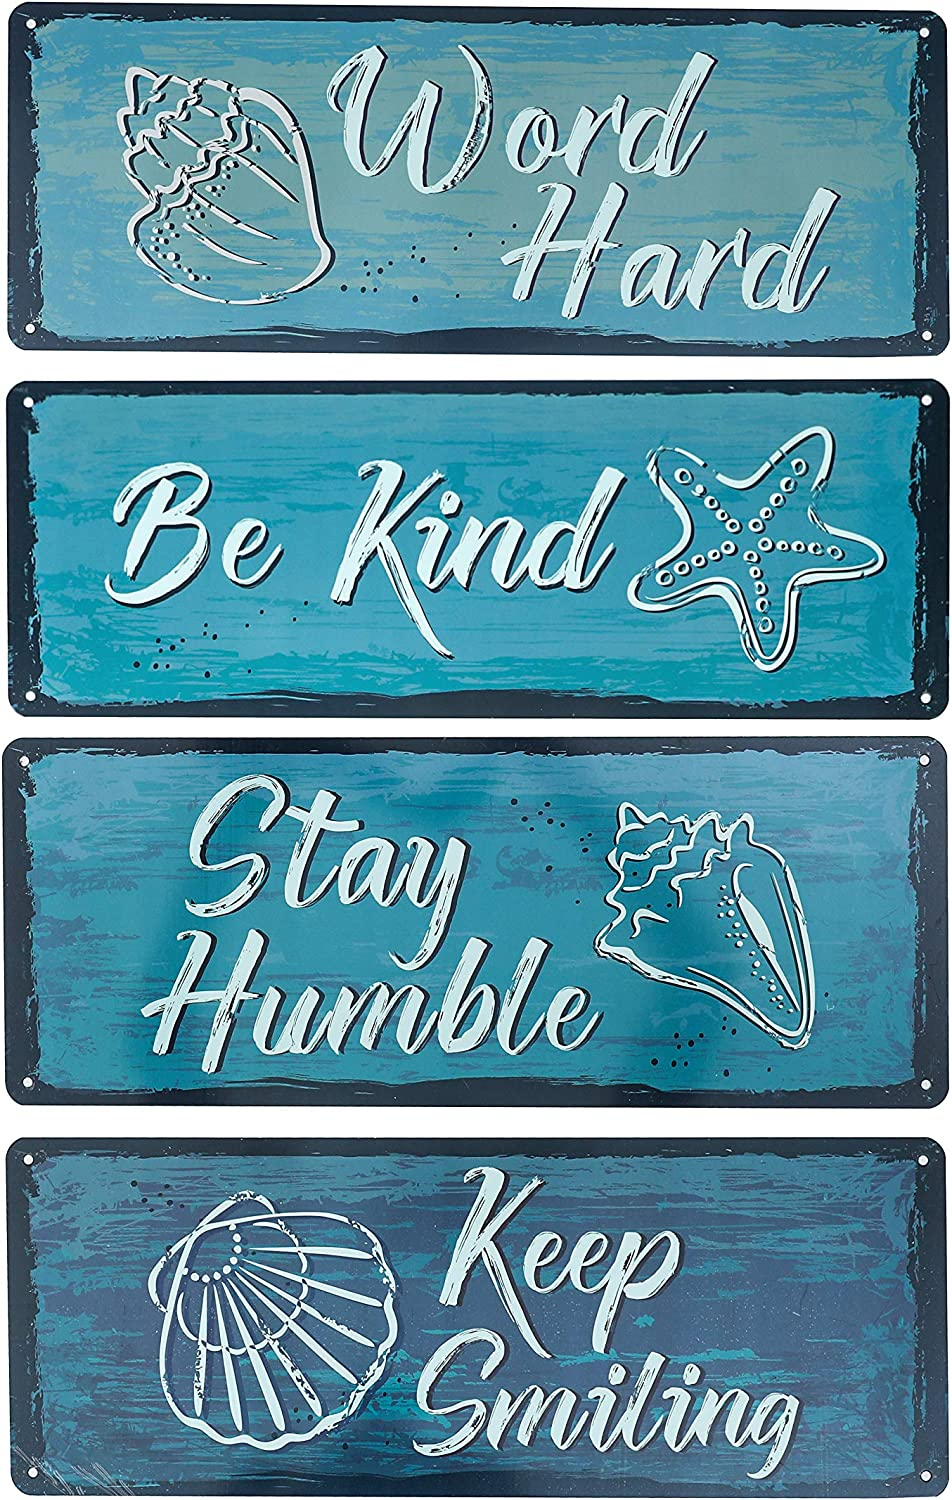 Rustic Metal Sign, Inspirational Quote & Saying Wall Art, Work Hard, Be Kind, Stay Humble, Keep Smiling Metal Wall Decor for Office or Living Room Entryway Home Office Decor Set of 4